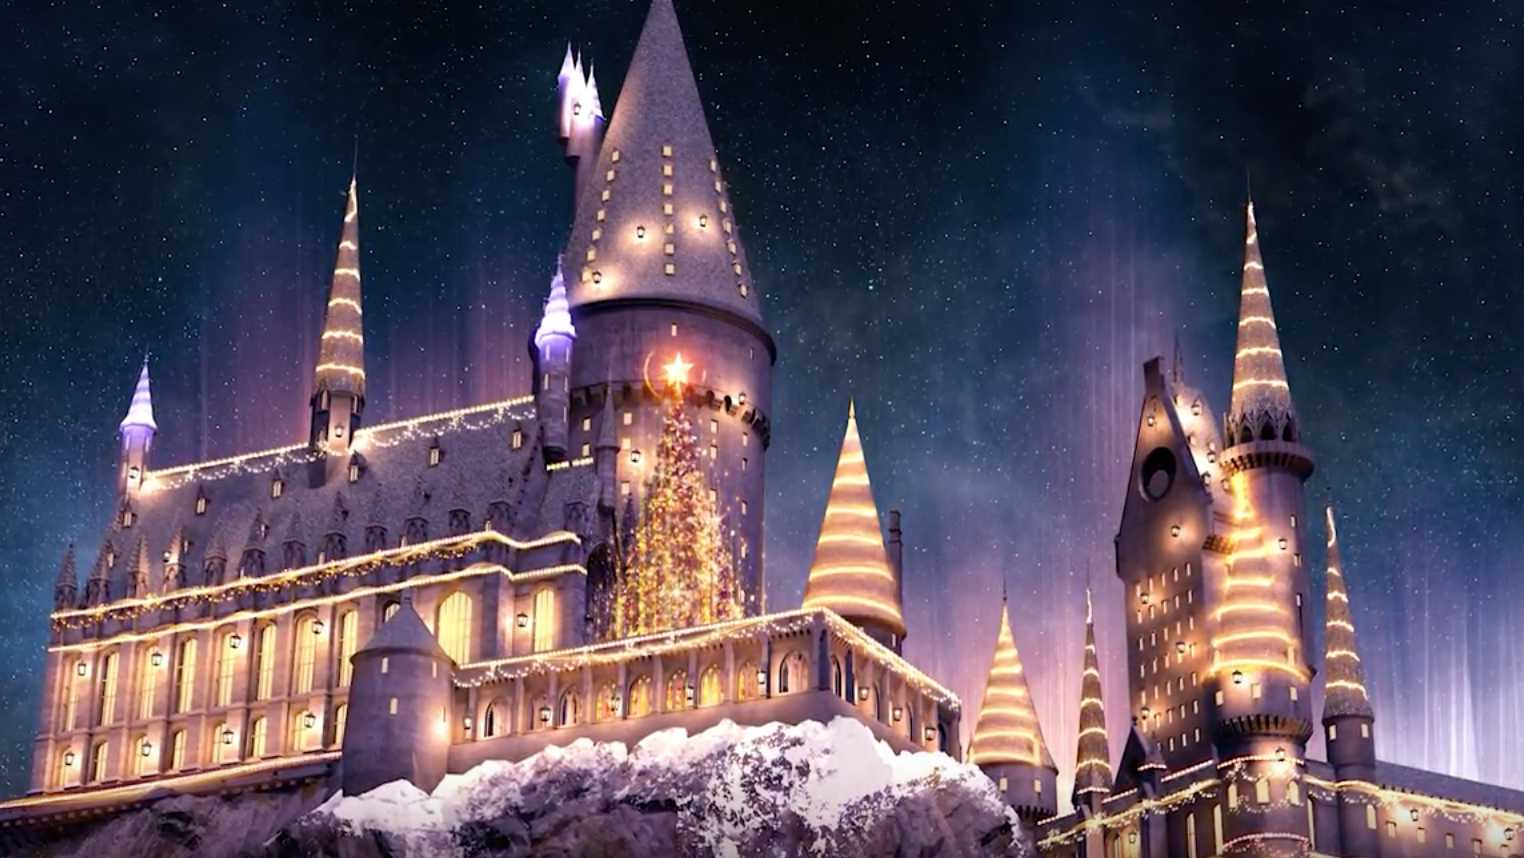 Christmas Is Coming To The Wizarding World Of Harry Potter | Christmas